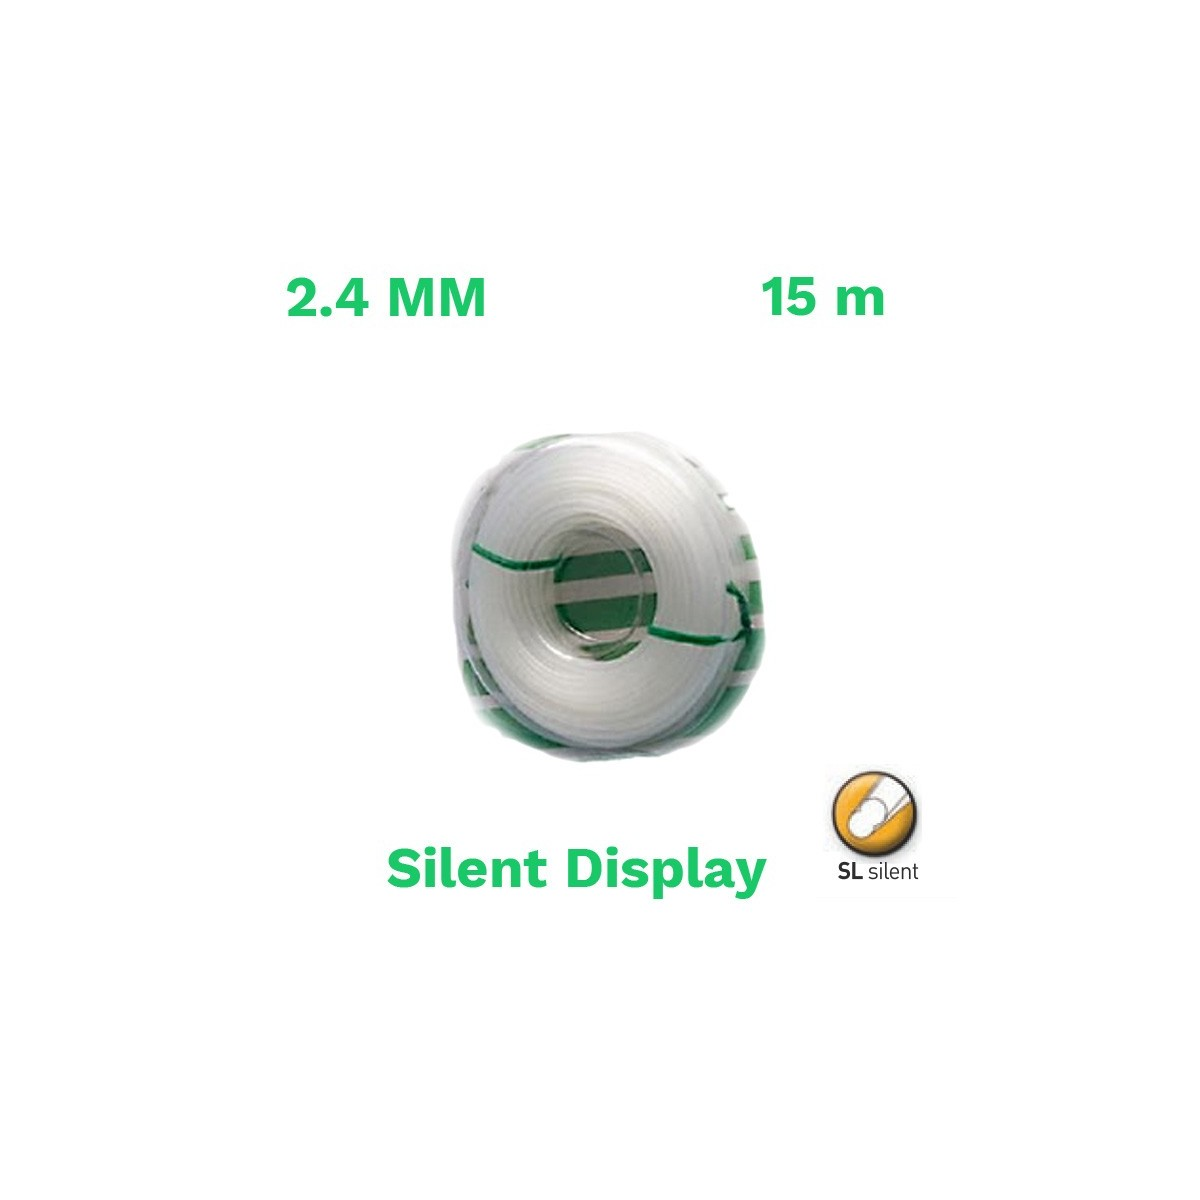 Echo hilo nylon silent display 2.4mm 15 m